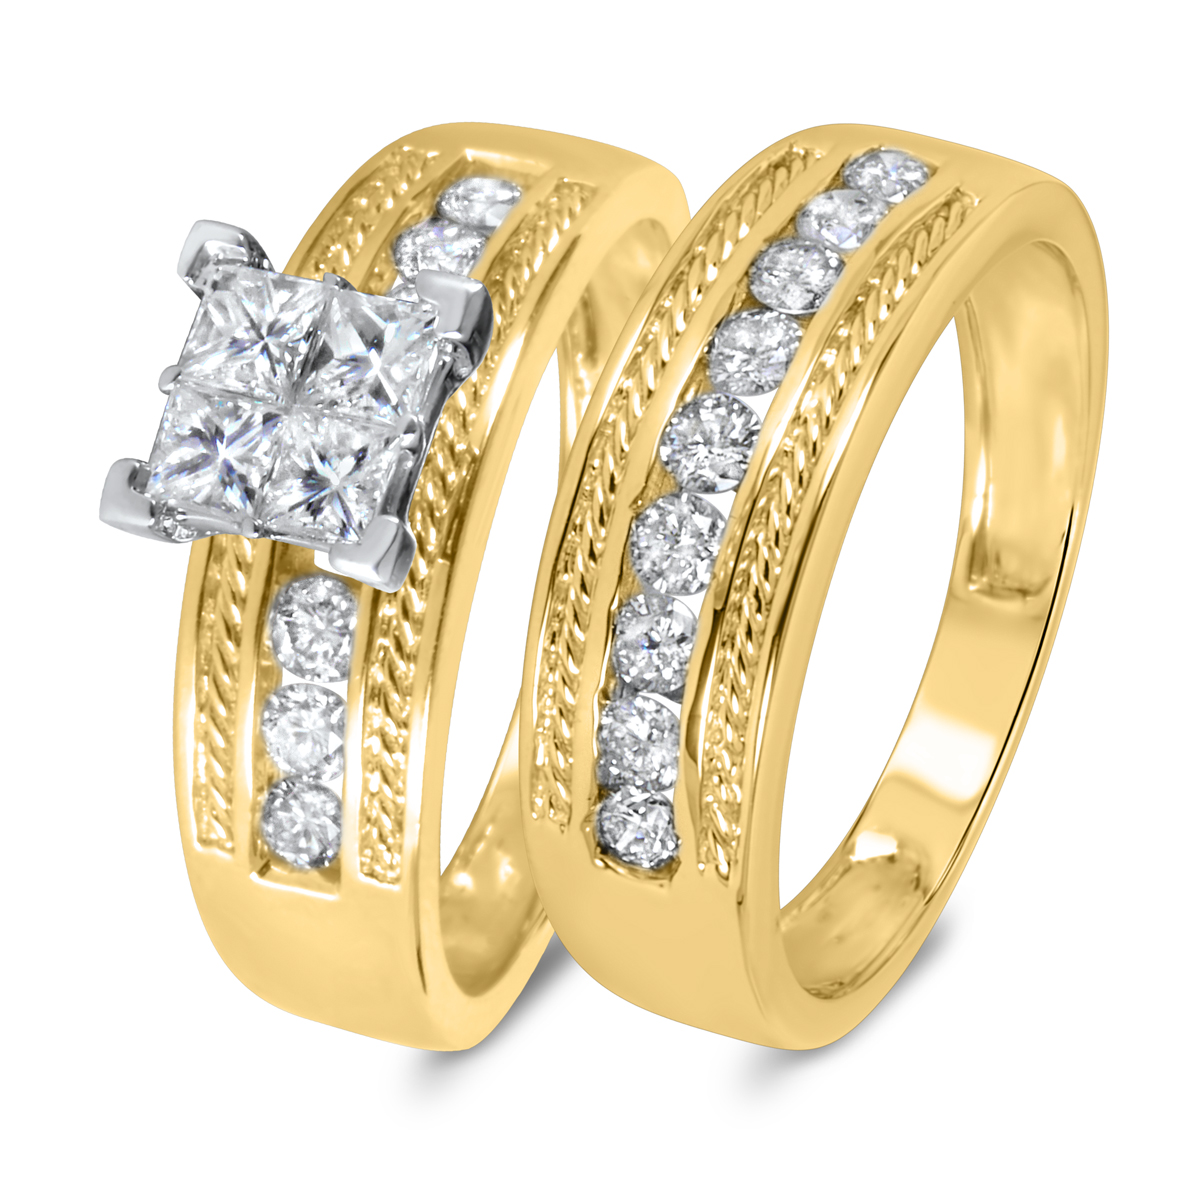 1 1/5 CT. T.W. Diamond Women's Bridal Wedding Ring Set 14K Yellow Gold